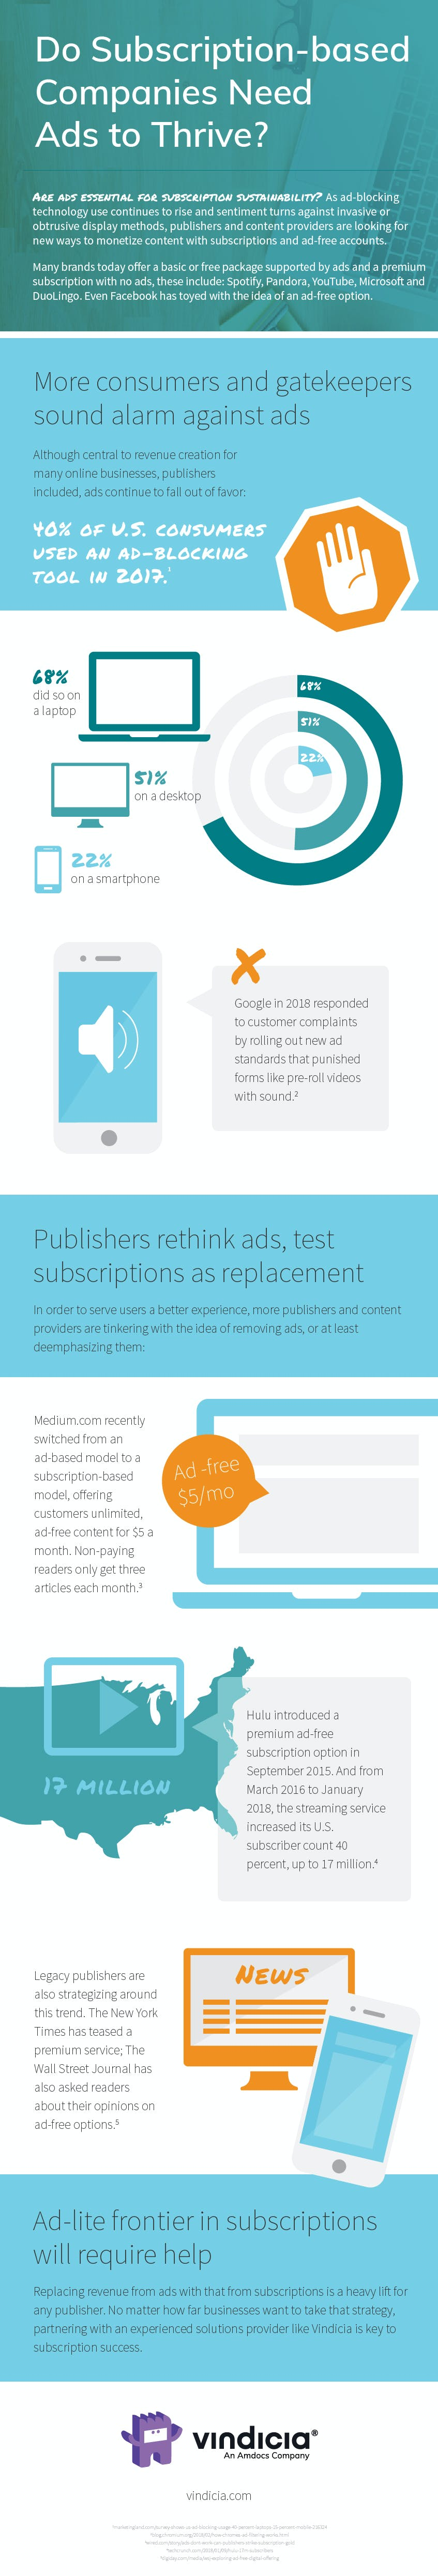 Do Subscription-based comapnies need ads to thrive